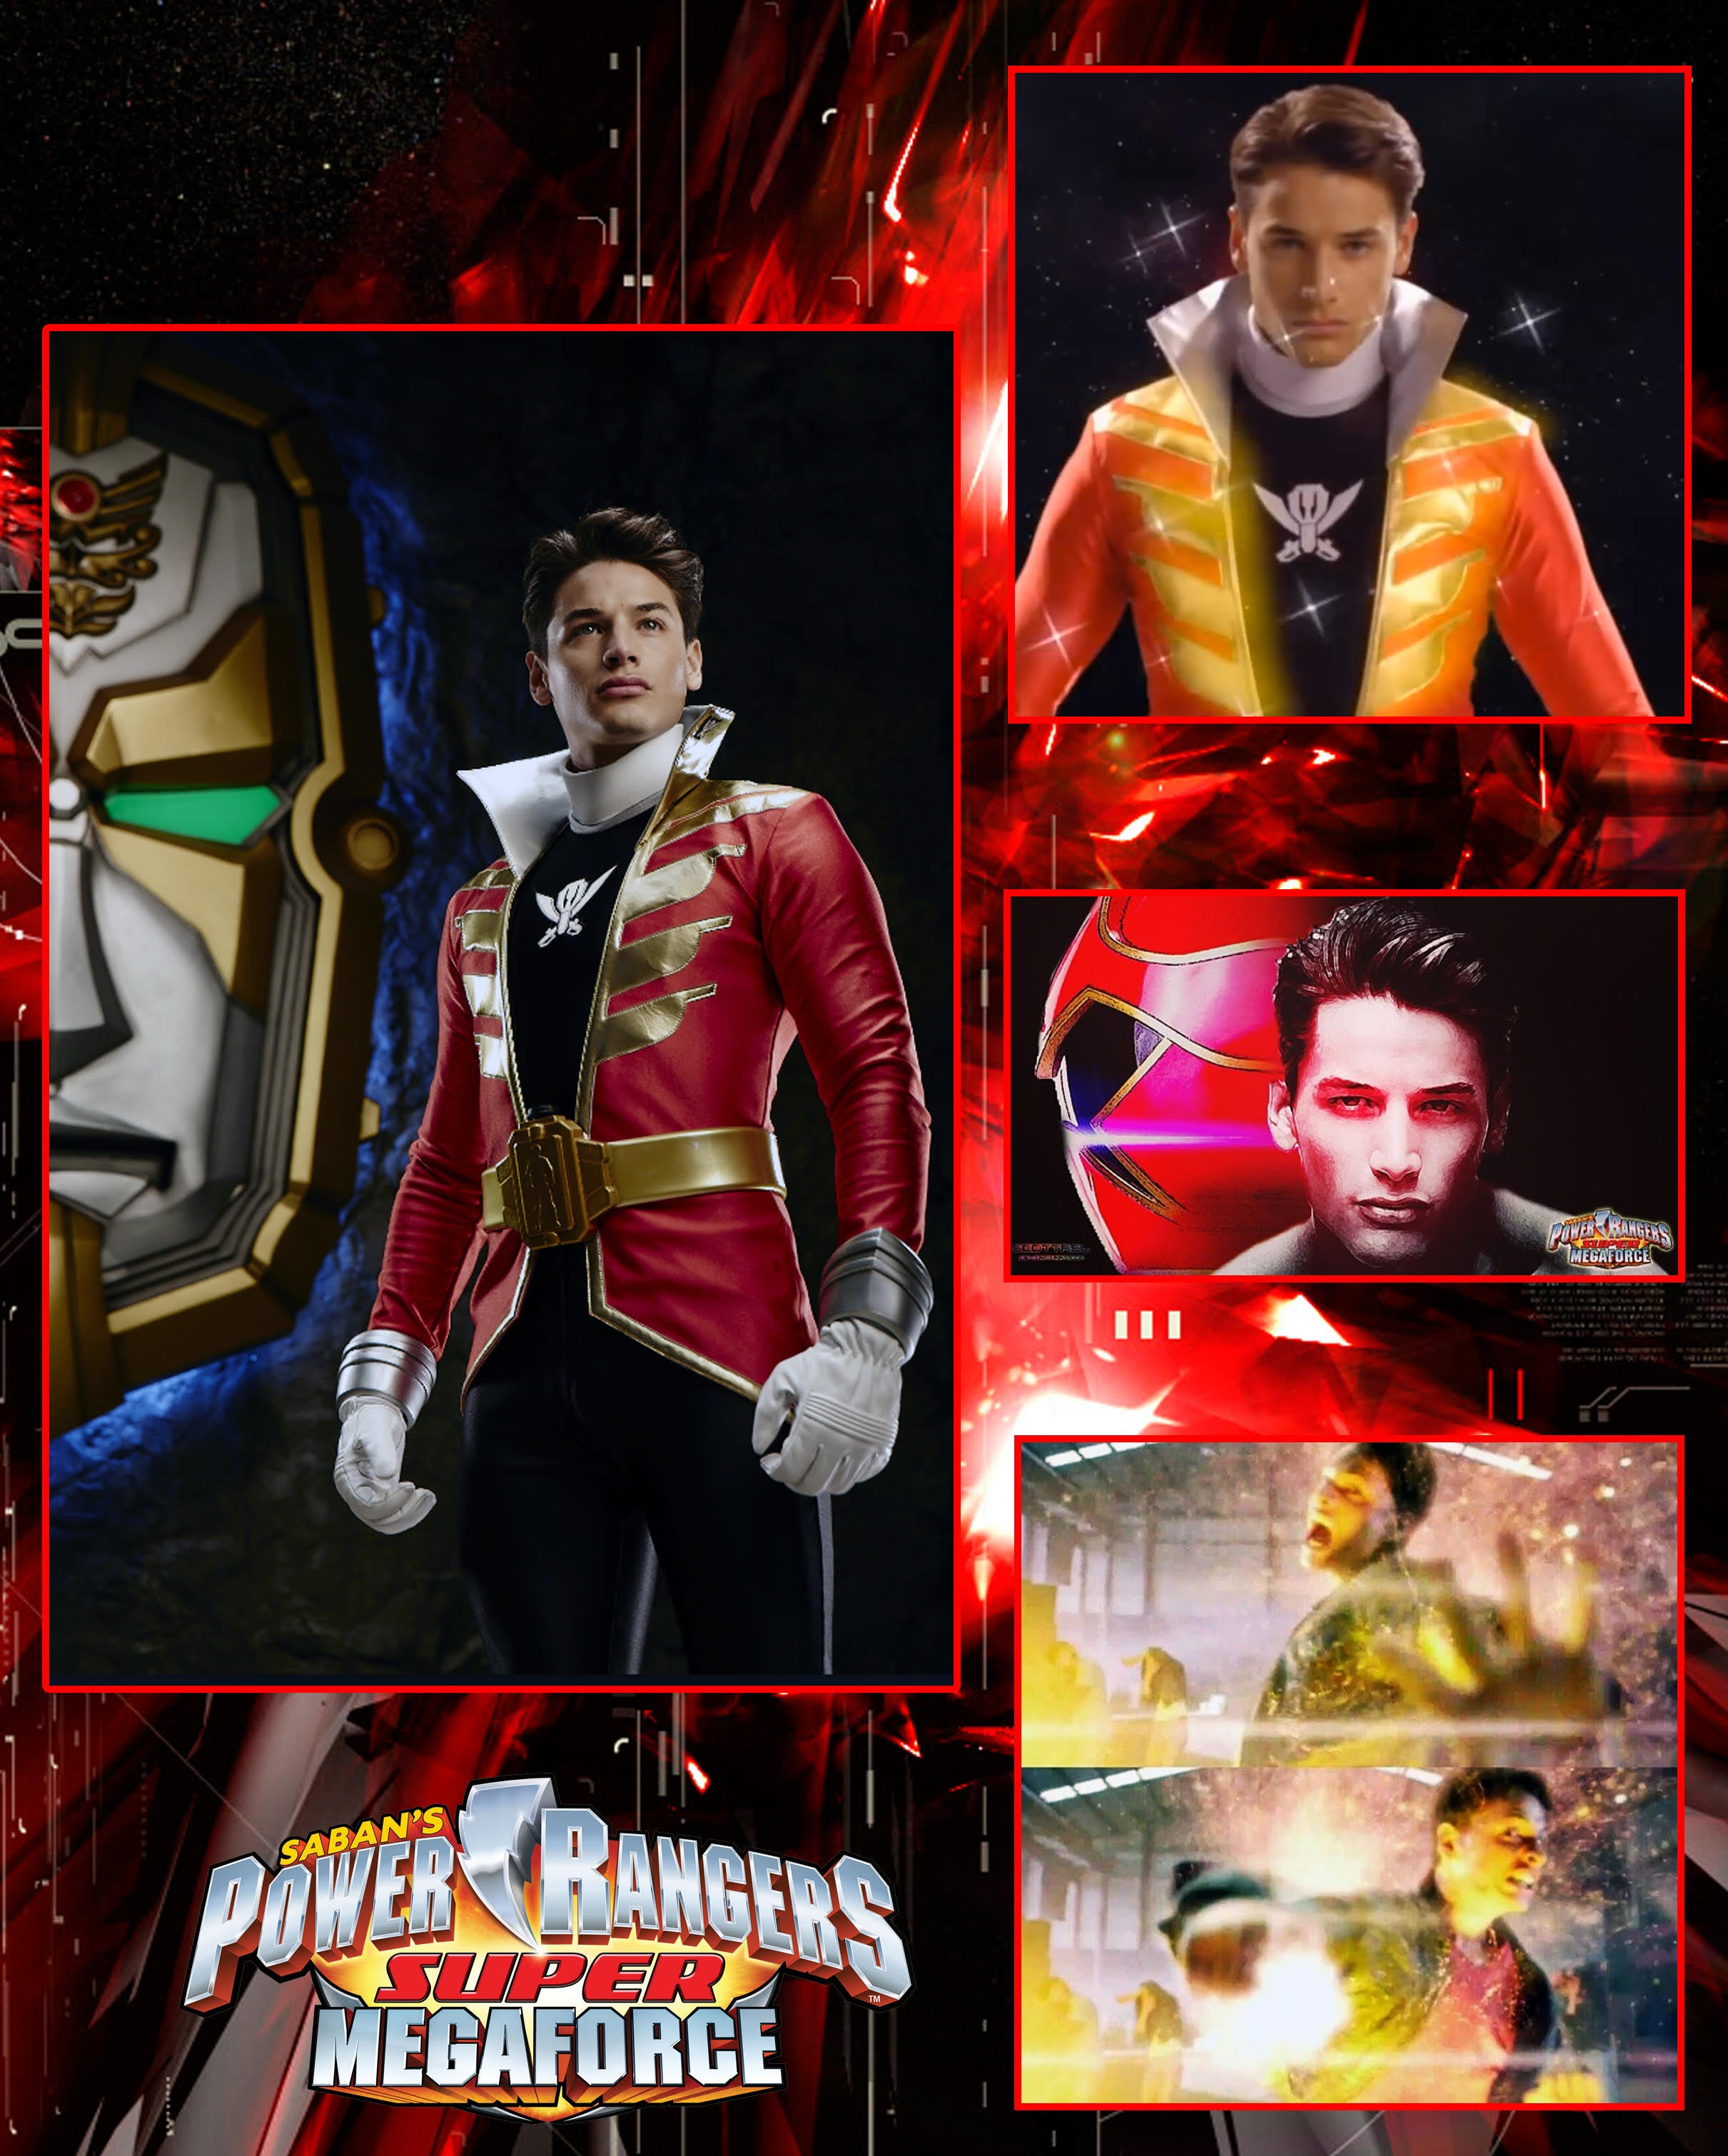 Andrew Gray Super Megaforce 8x10 Print